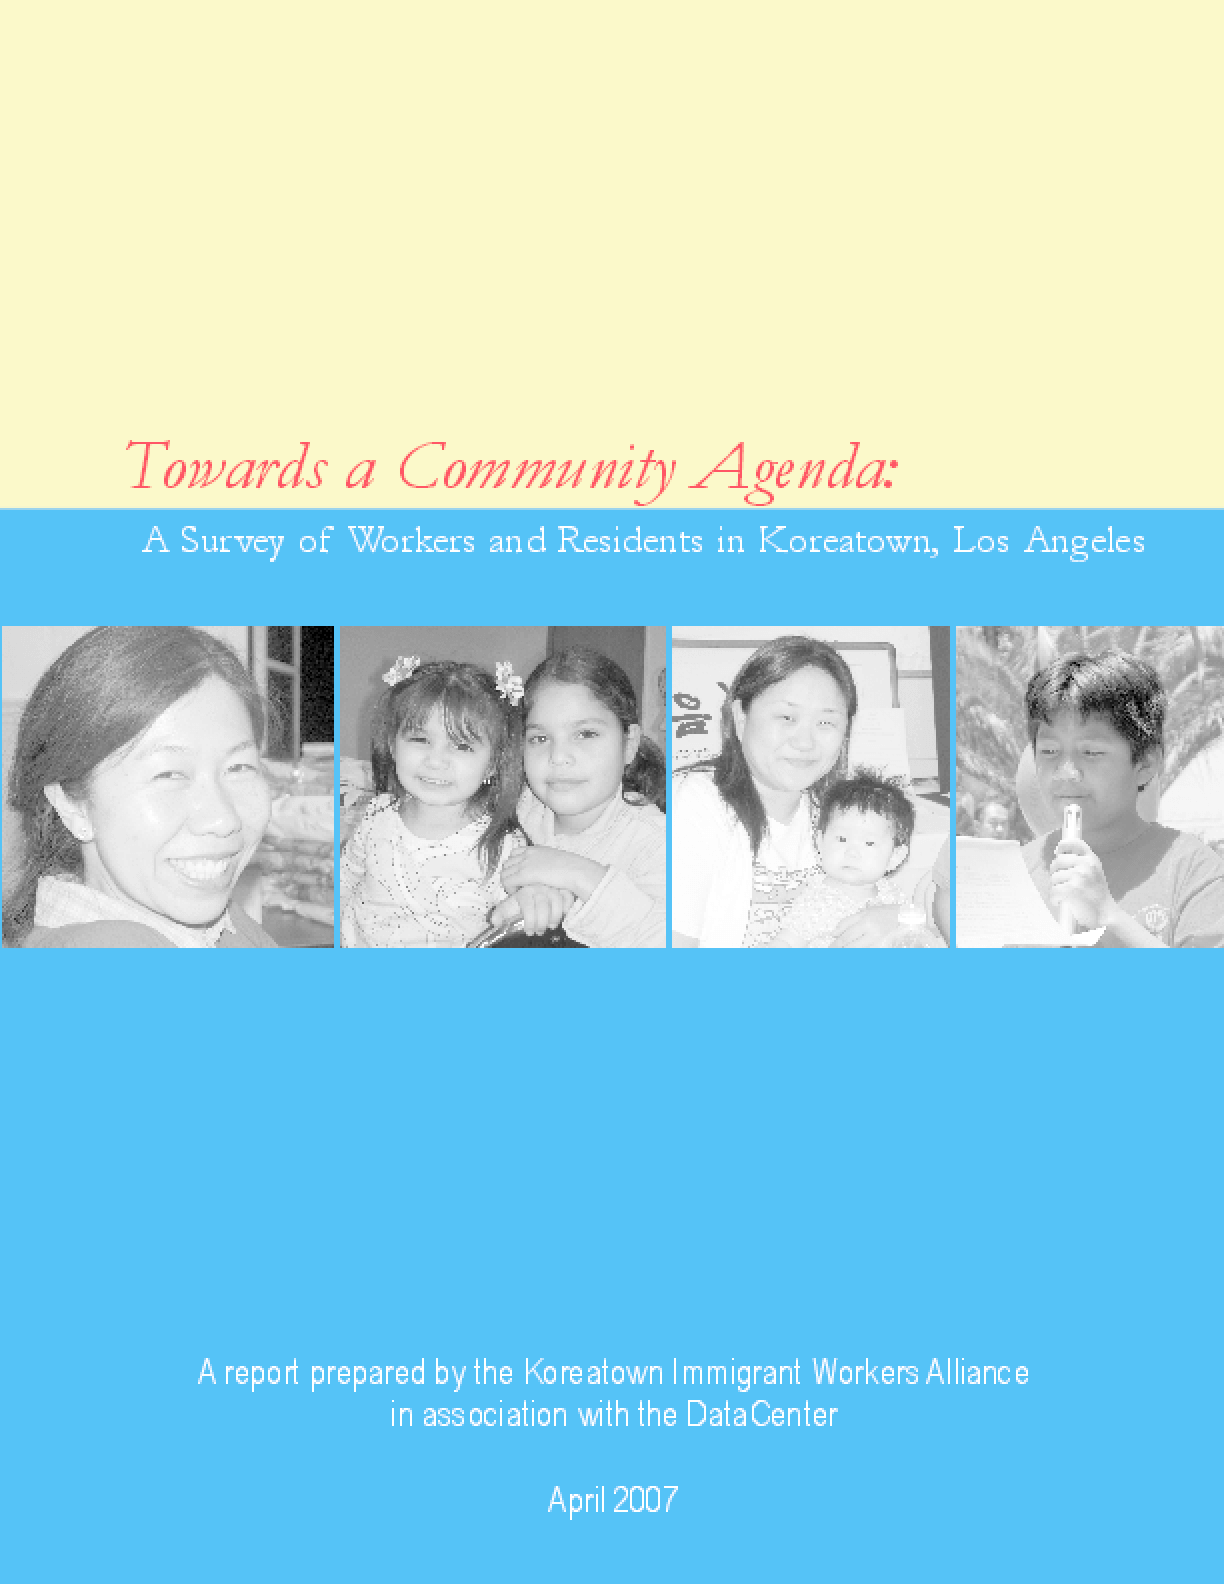 Towards a Community Agenda: A Survey of Workers and Residents in Koreatown, Los Angeles